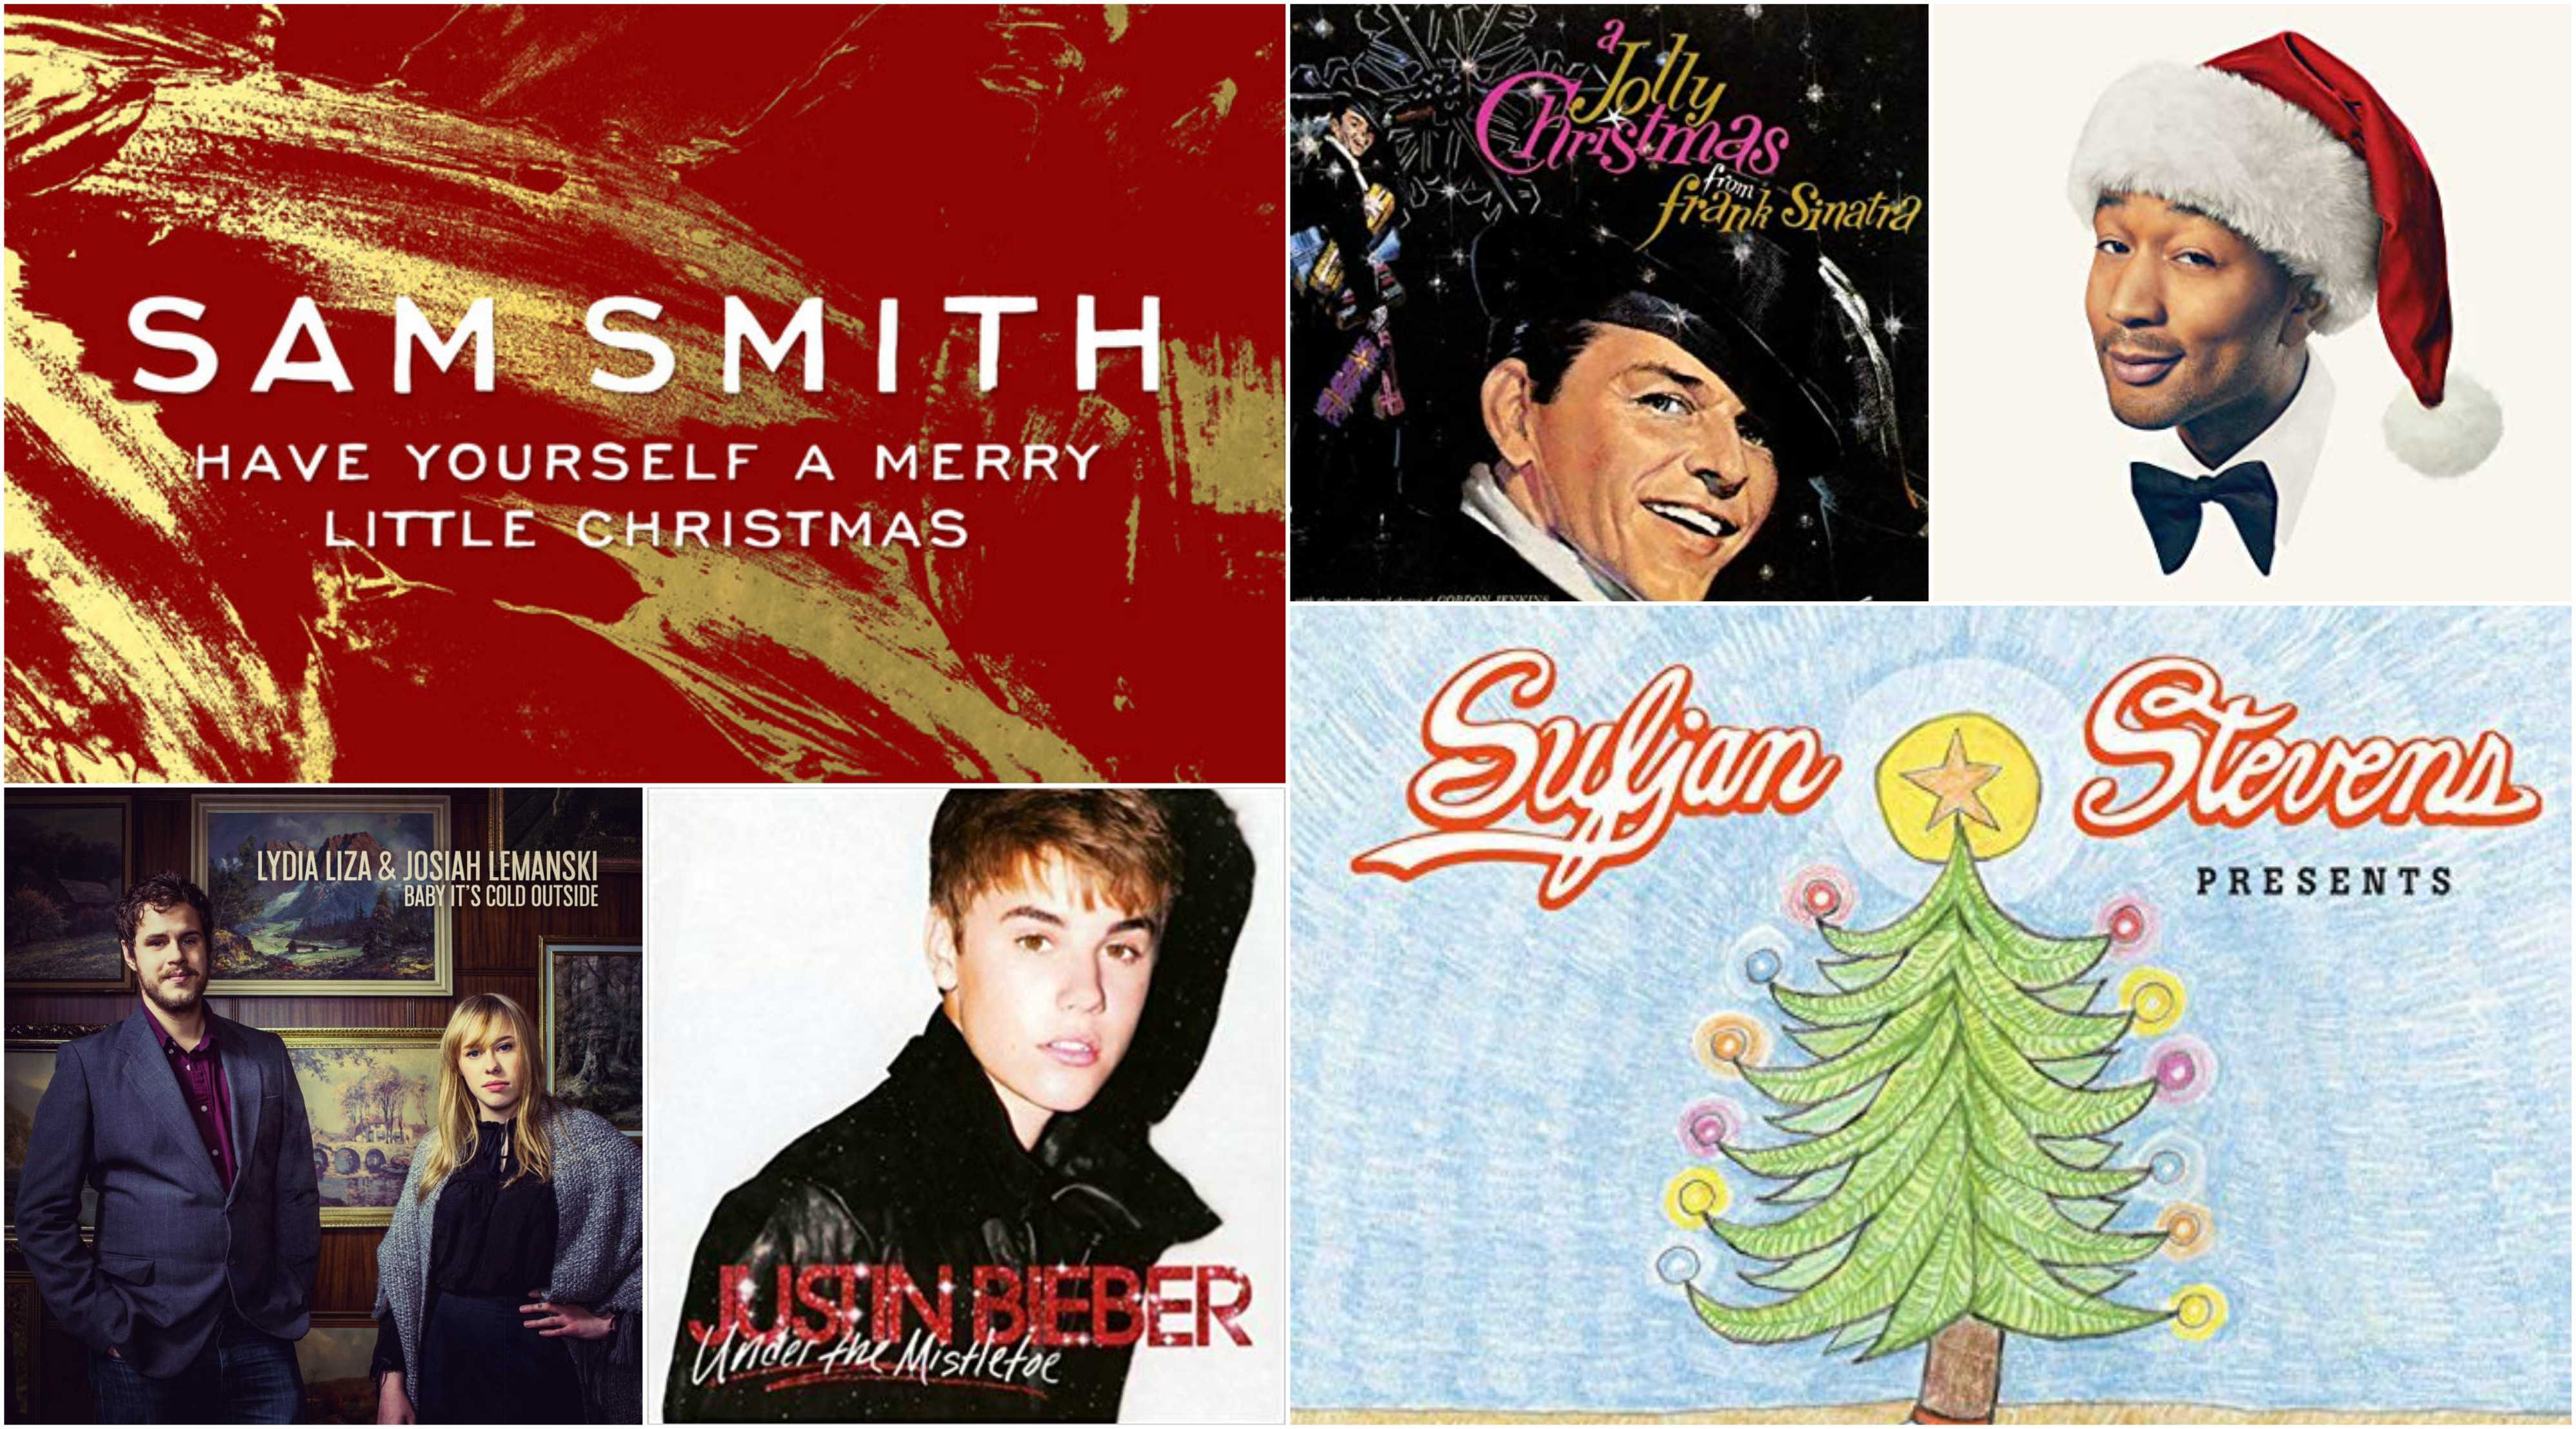 The best Christmas songs to play this holiday season